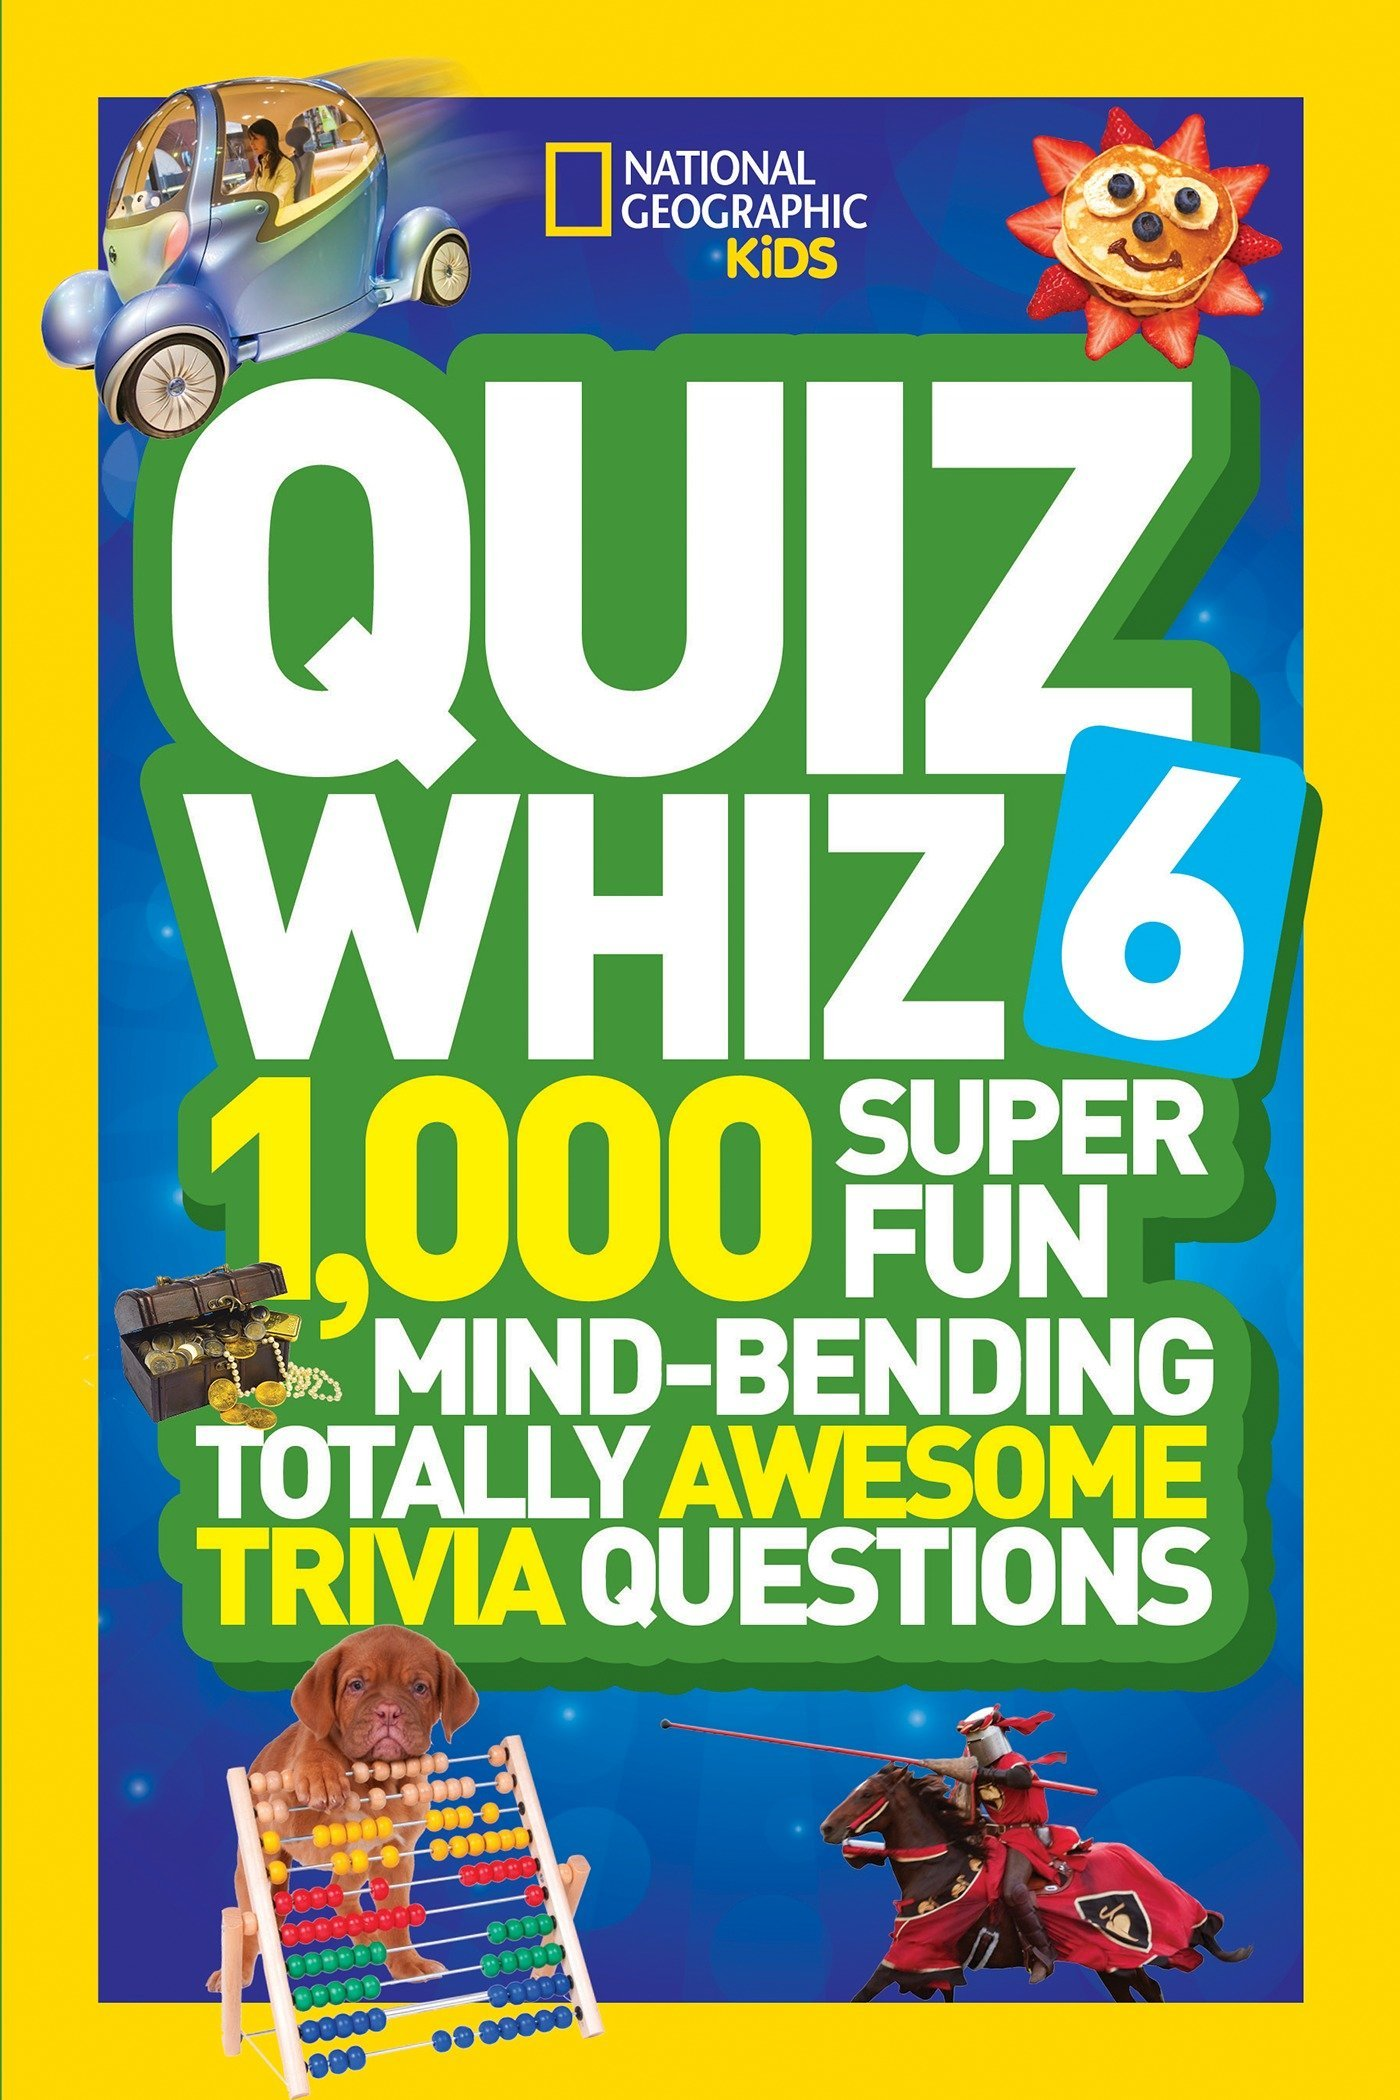 National Geographic Kids Quiz Whiz 6: 1,000 Super Fun Mind-Bending Totally Awesome Trivia Questions by National Geographic Children's Books (Image #1)